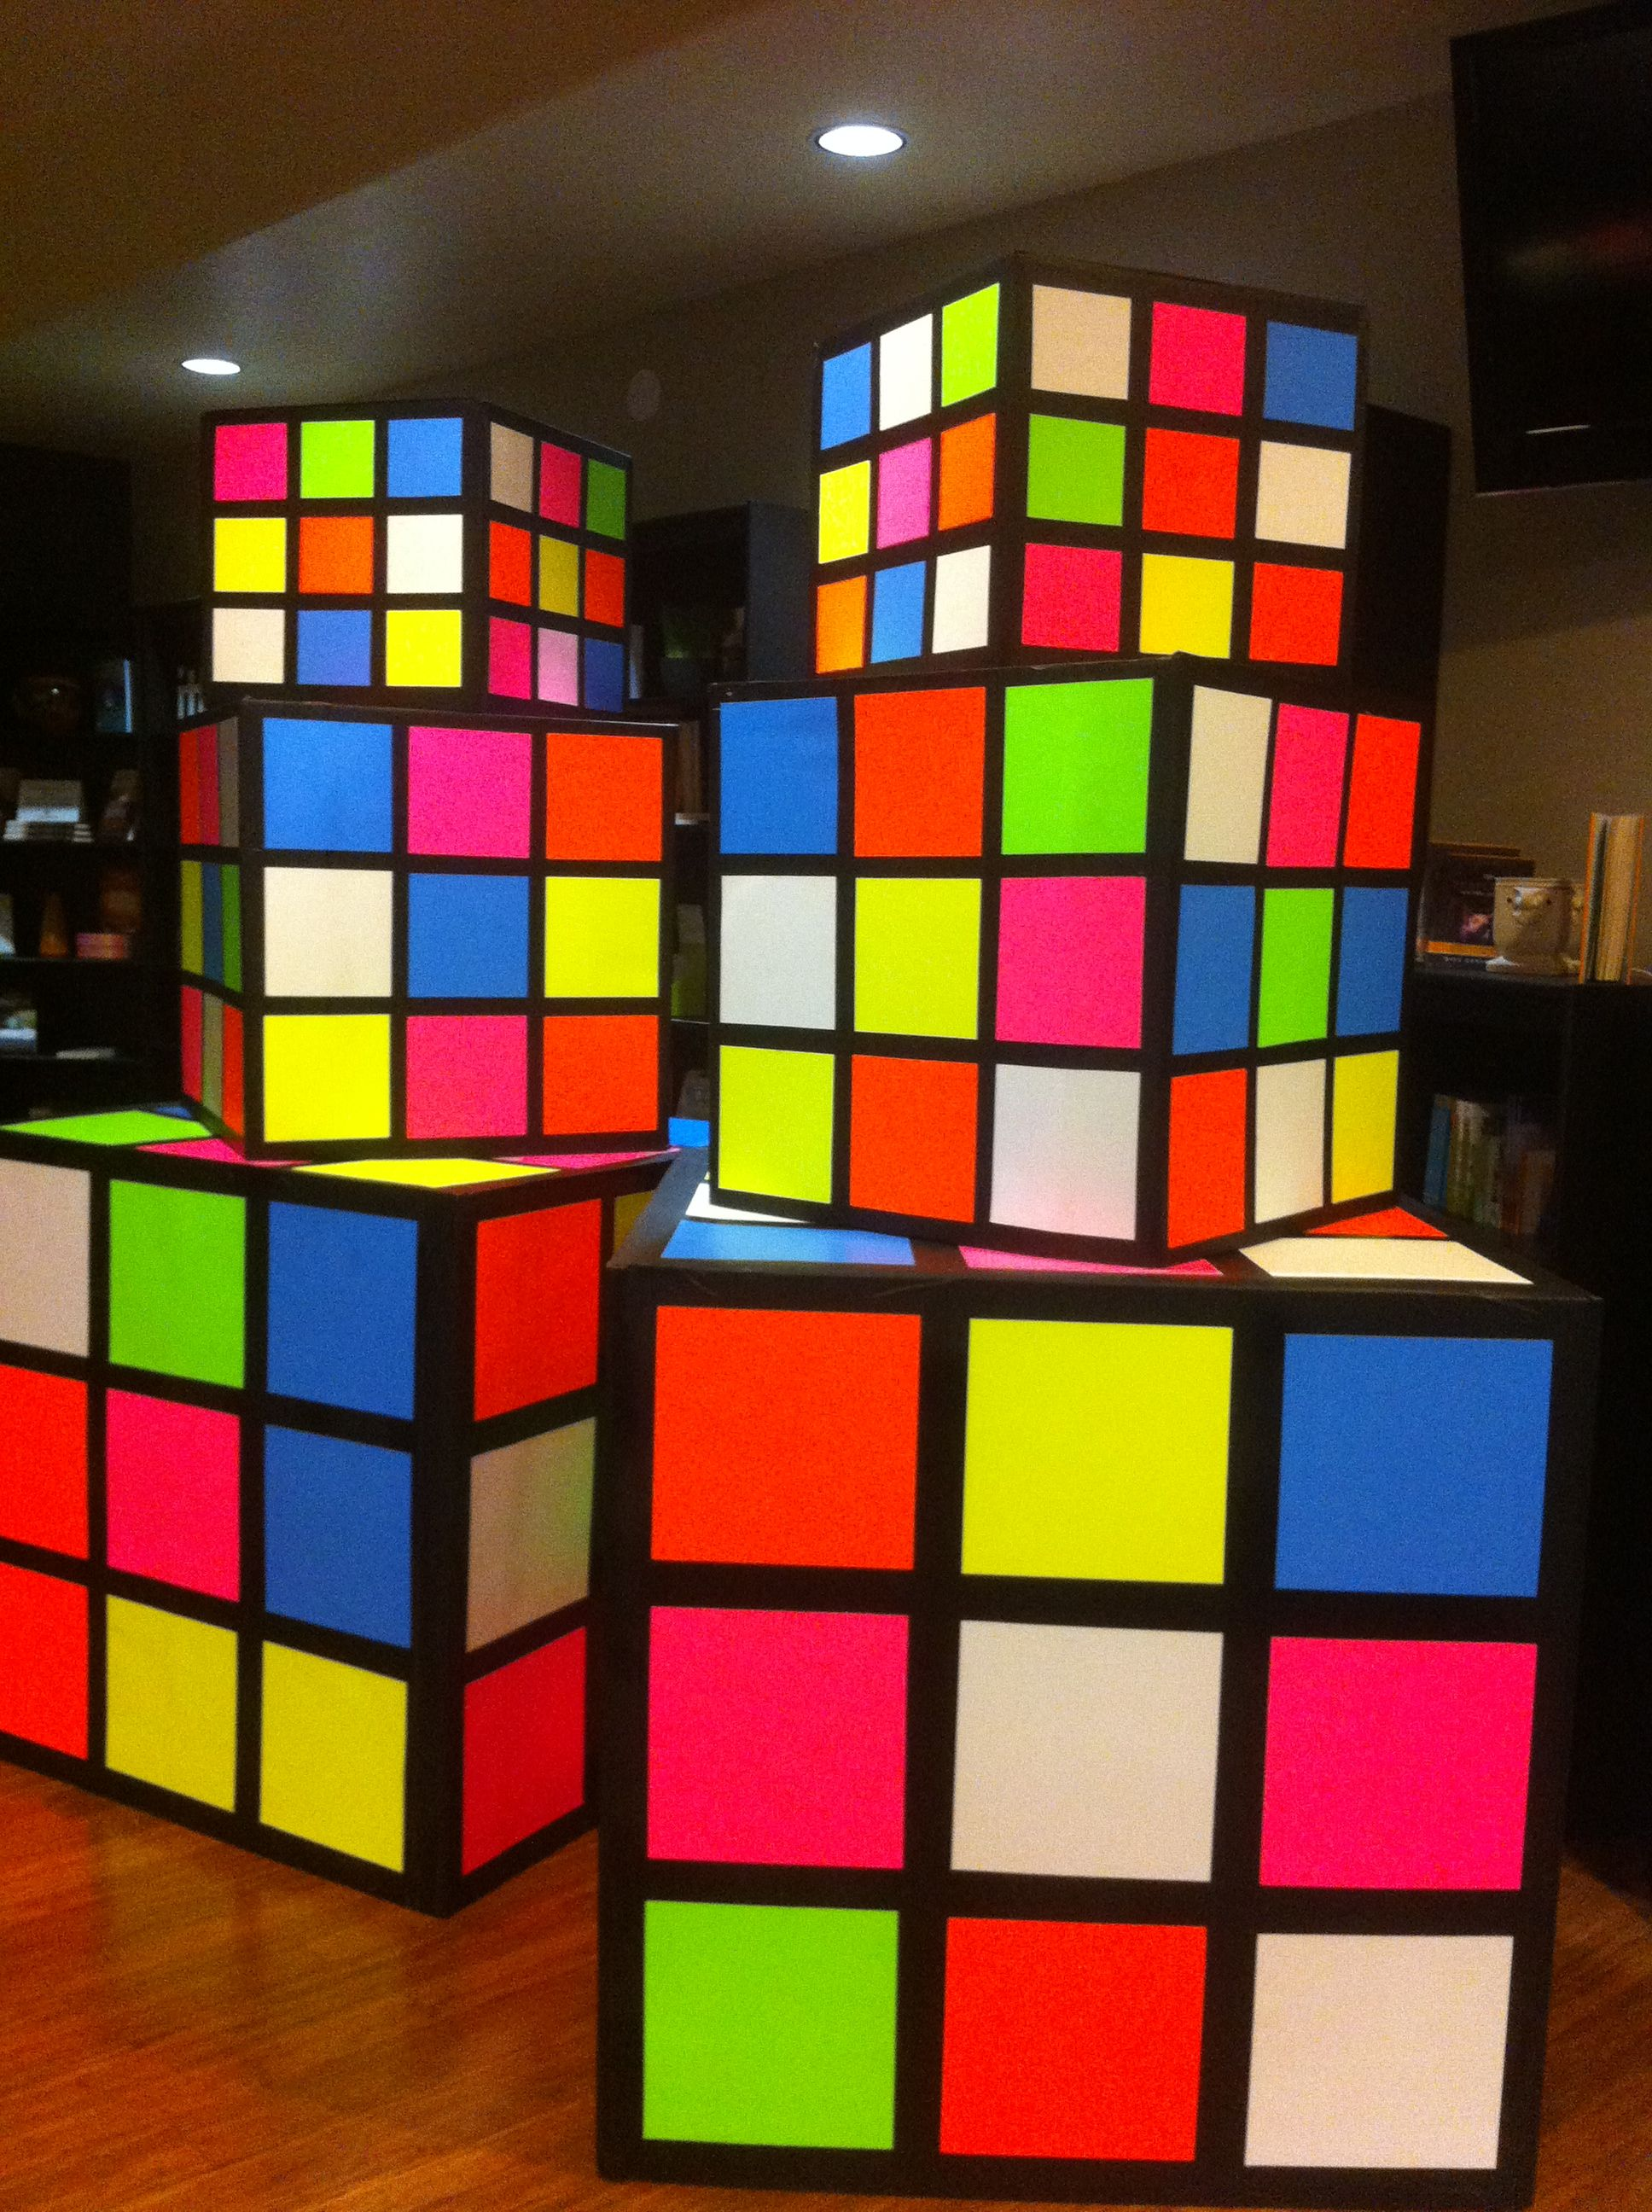 rubik 39 s cubes made from refrigerator boxes black primer paint spray adhesive and neon poster. Black Bedroom Furniture Sets. Home Design Ideas